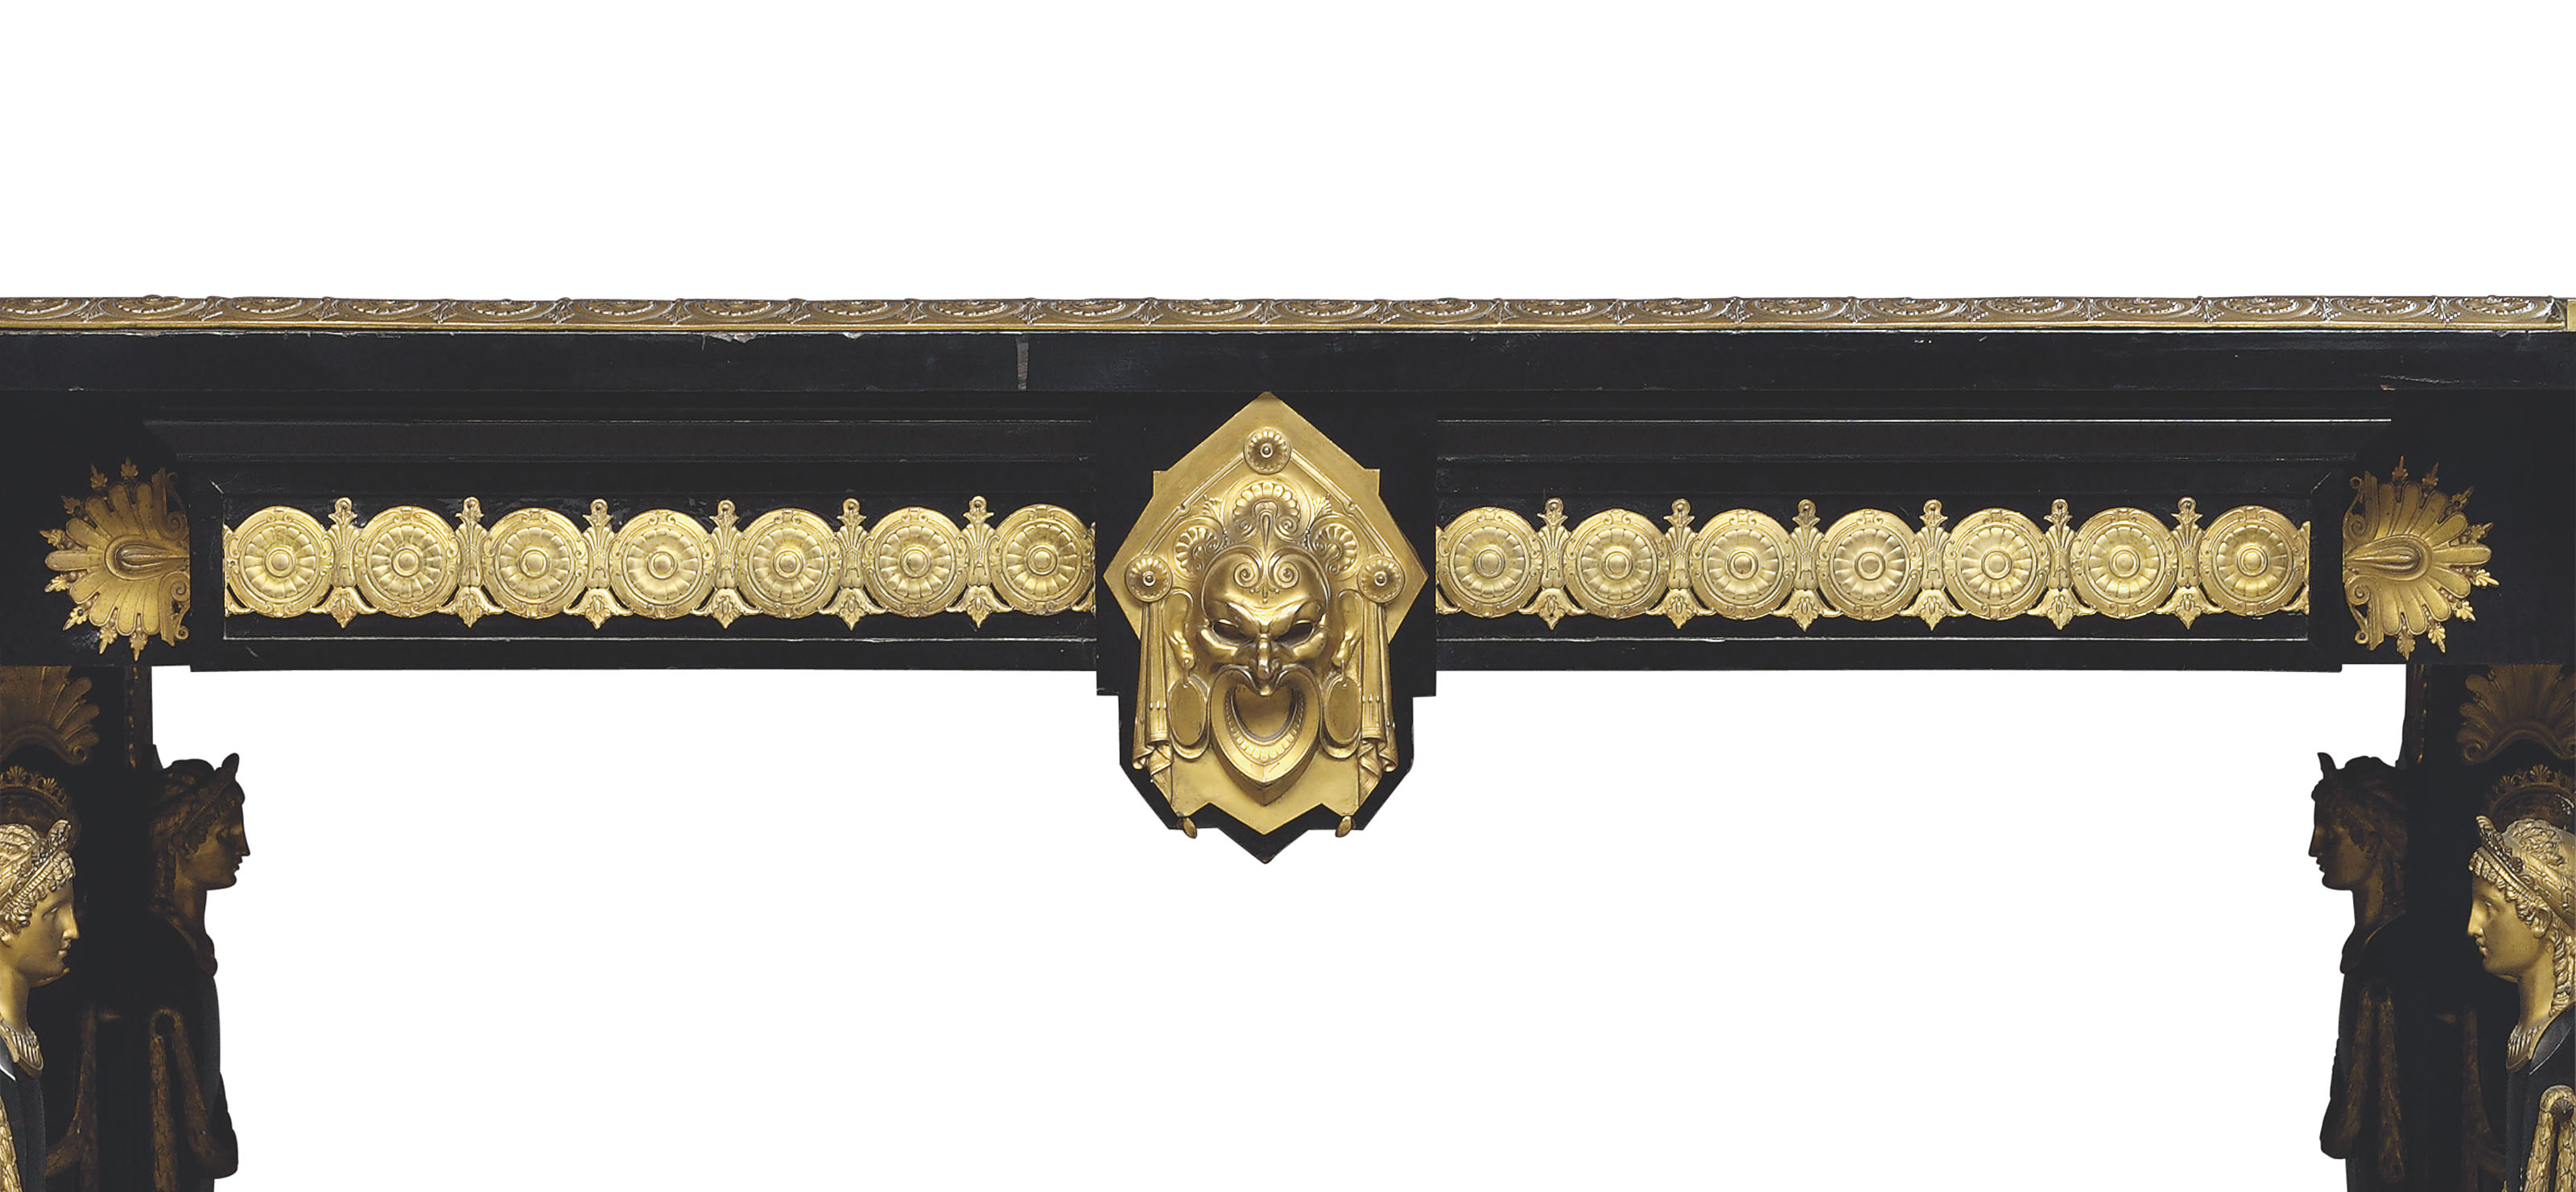 AN IMPORTANT NAPOLEON III ORMOLU AND GILT-COPPER-MOUNTED EBONY AND SYCAMORE MARQUETRY CENTRE TABLE